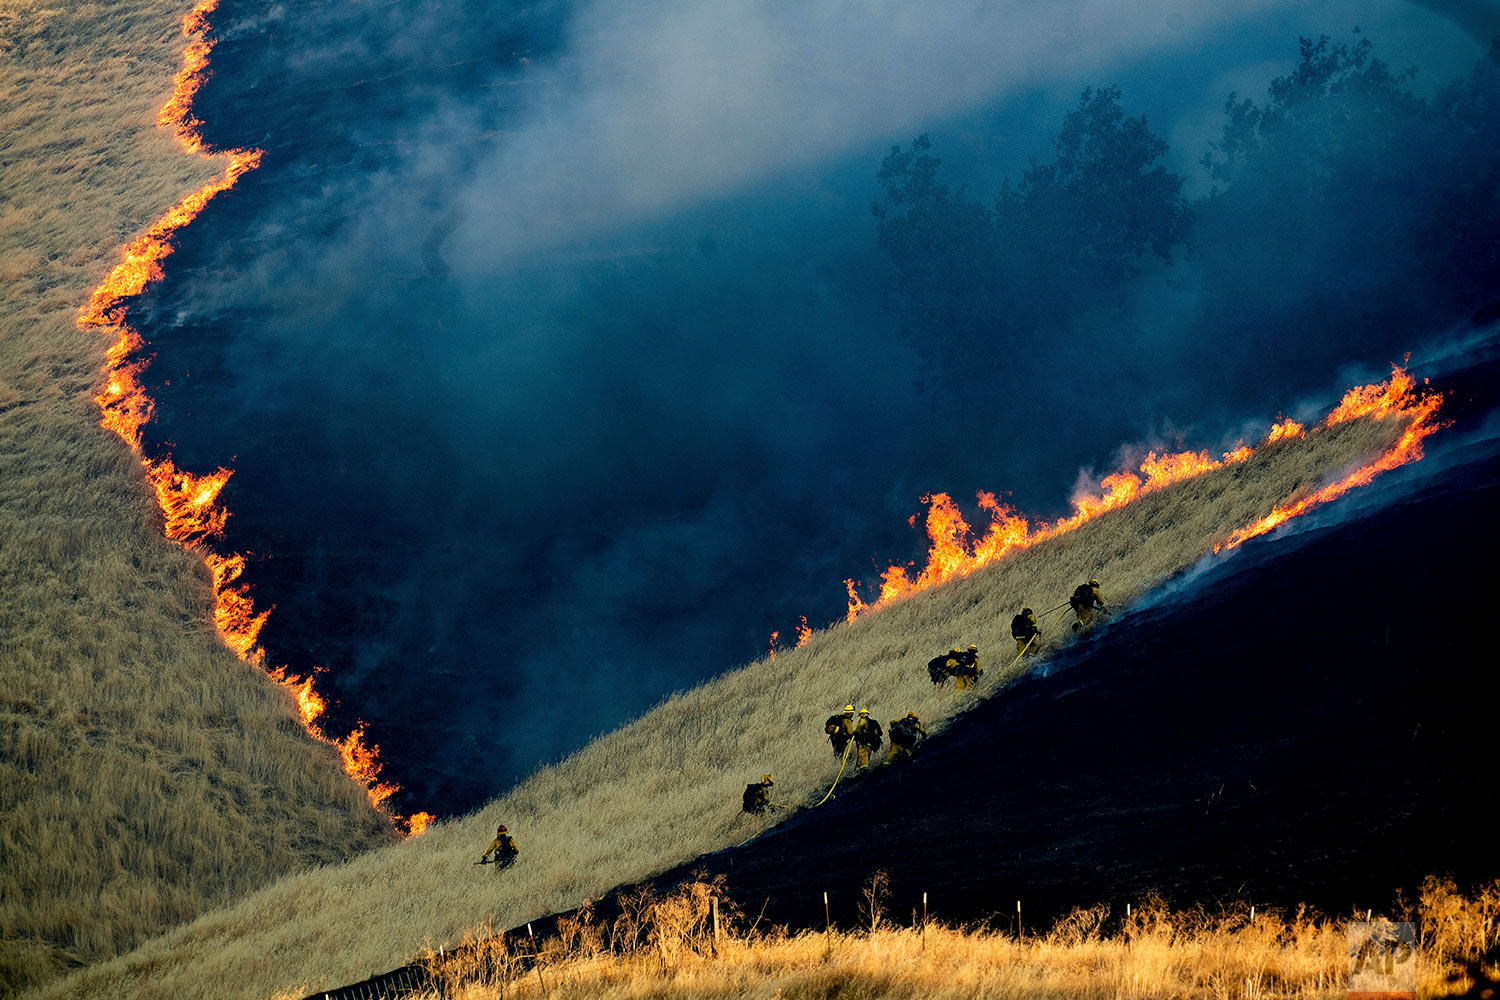 Firefighters battle the Marsh Fire near the town of Brentwood in Contra Costa County, Calif., Saturday, Aug. 3, 2019. (AP Photo/Noah Berger)